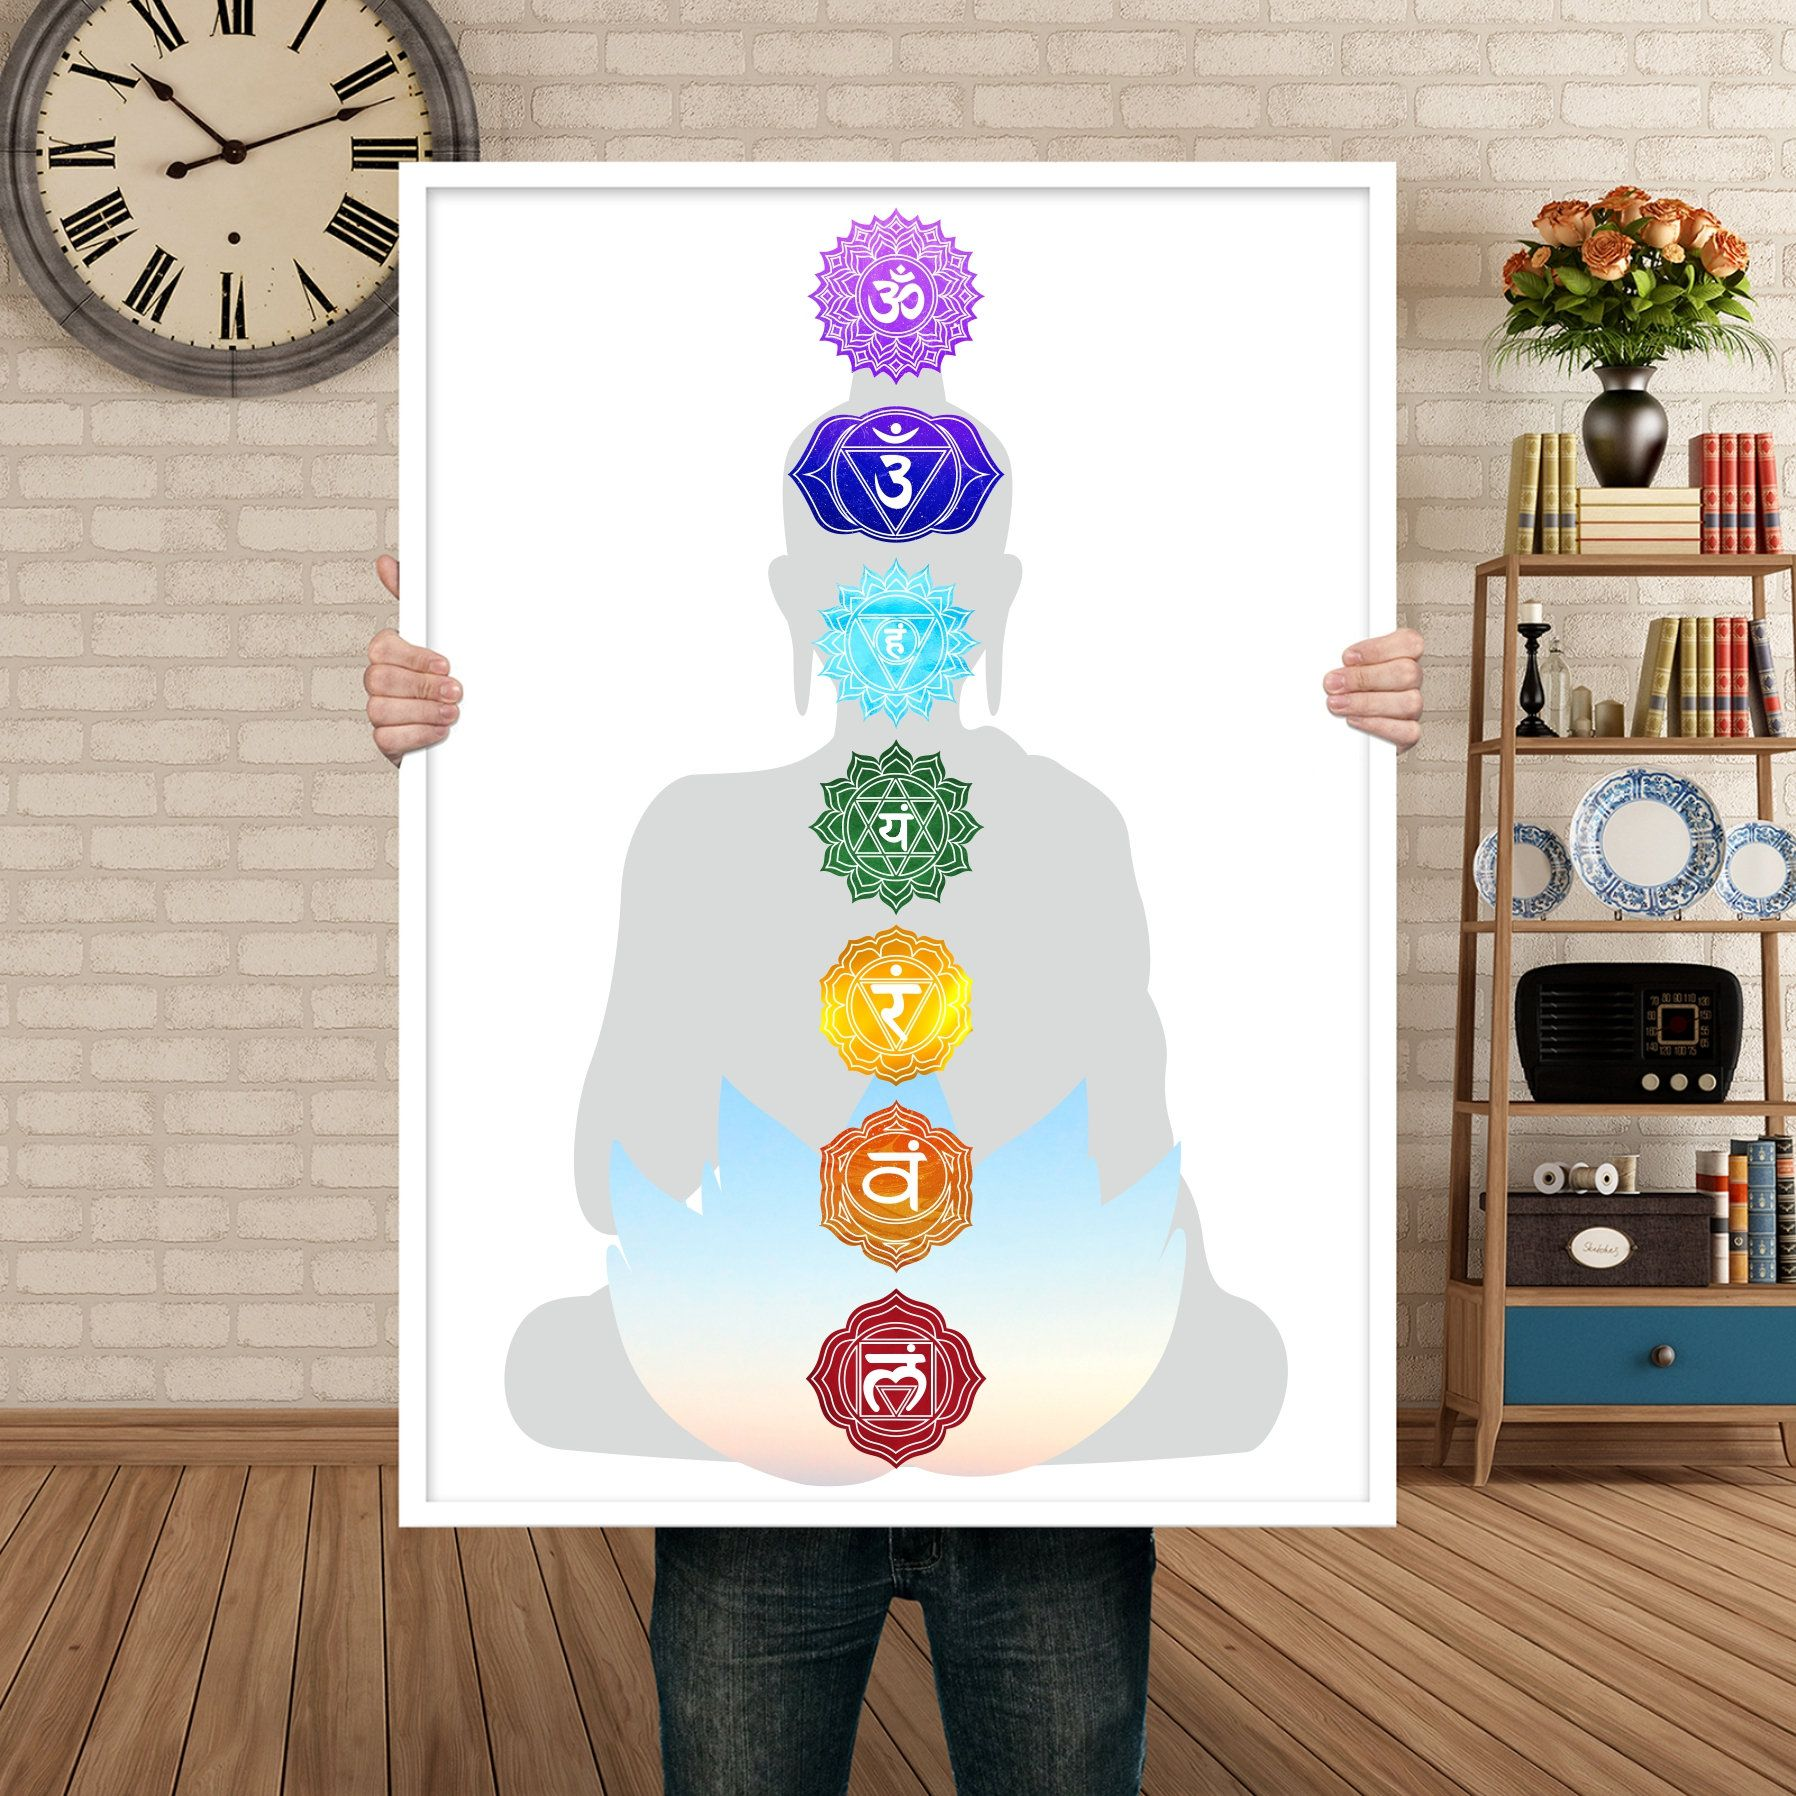 Buddha Print Wall Art, Chakra Poster, Lotus Décor, Meditation Tool, Yoga Studio Decor, Yoga Wall Décor, Buddha Decor, Meditation Wall Decor #buddhadecor